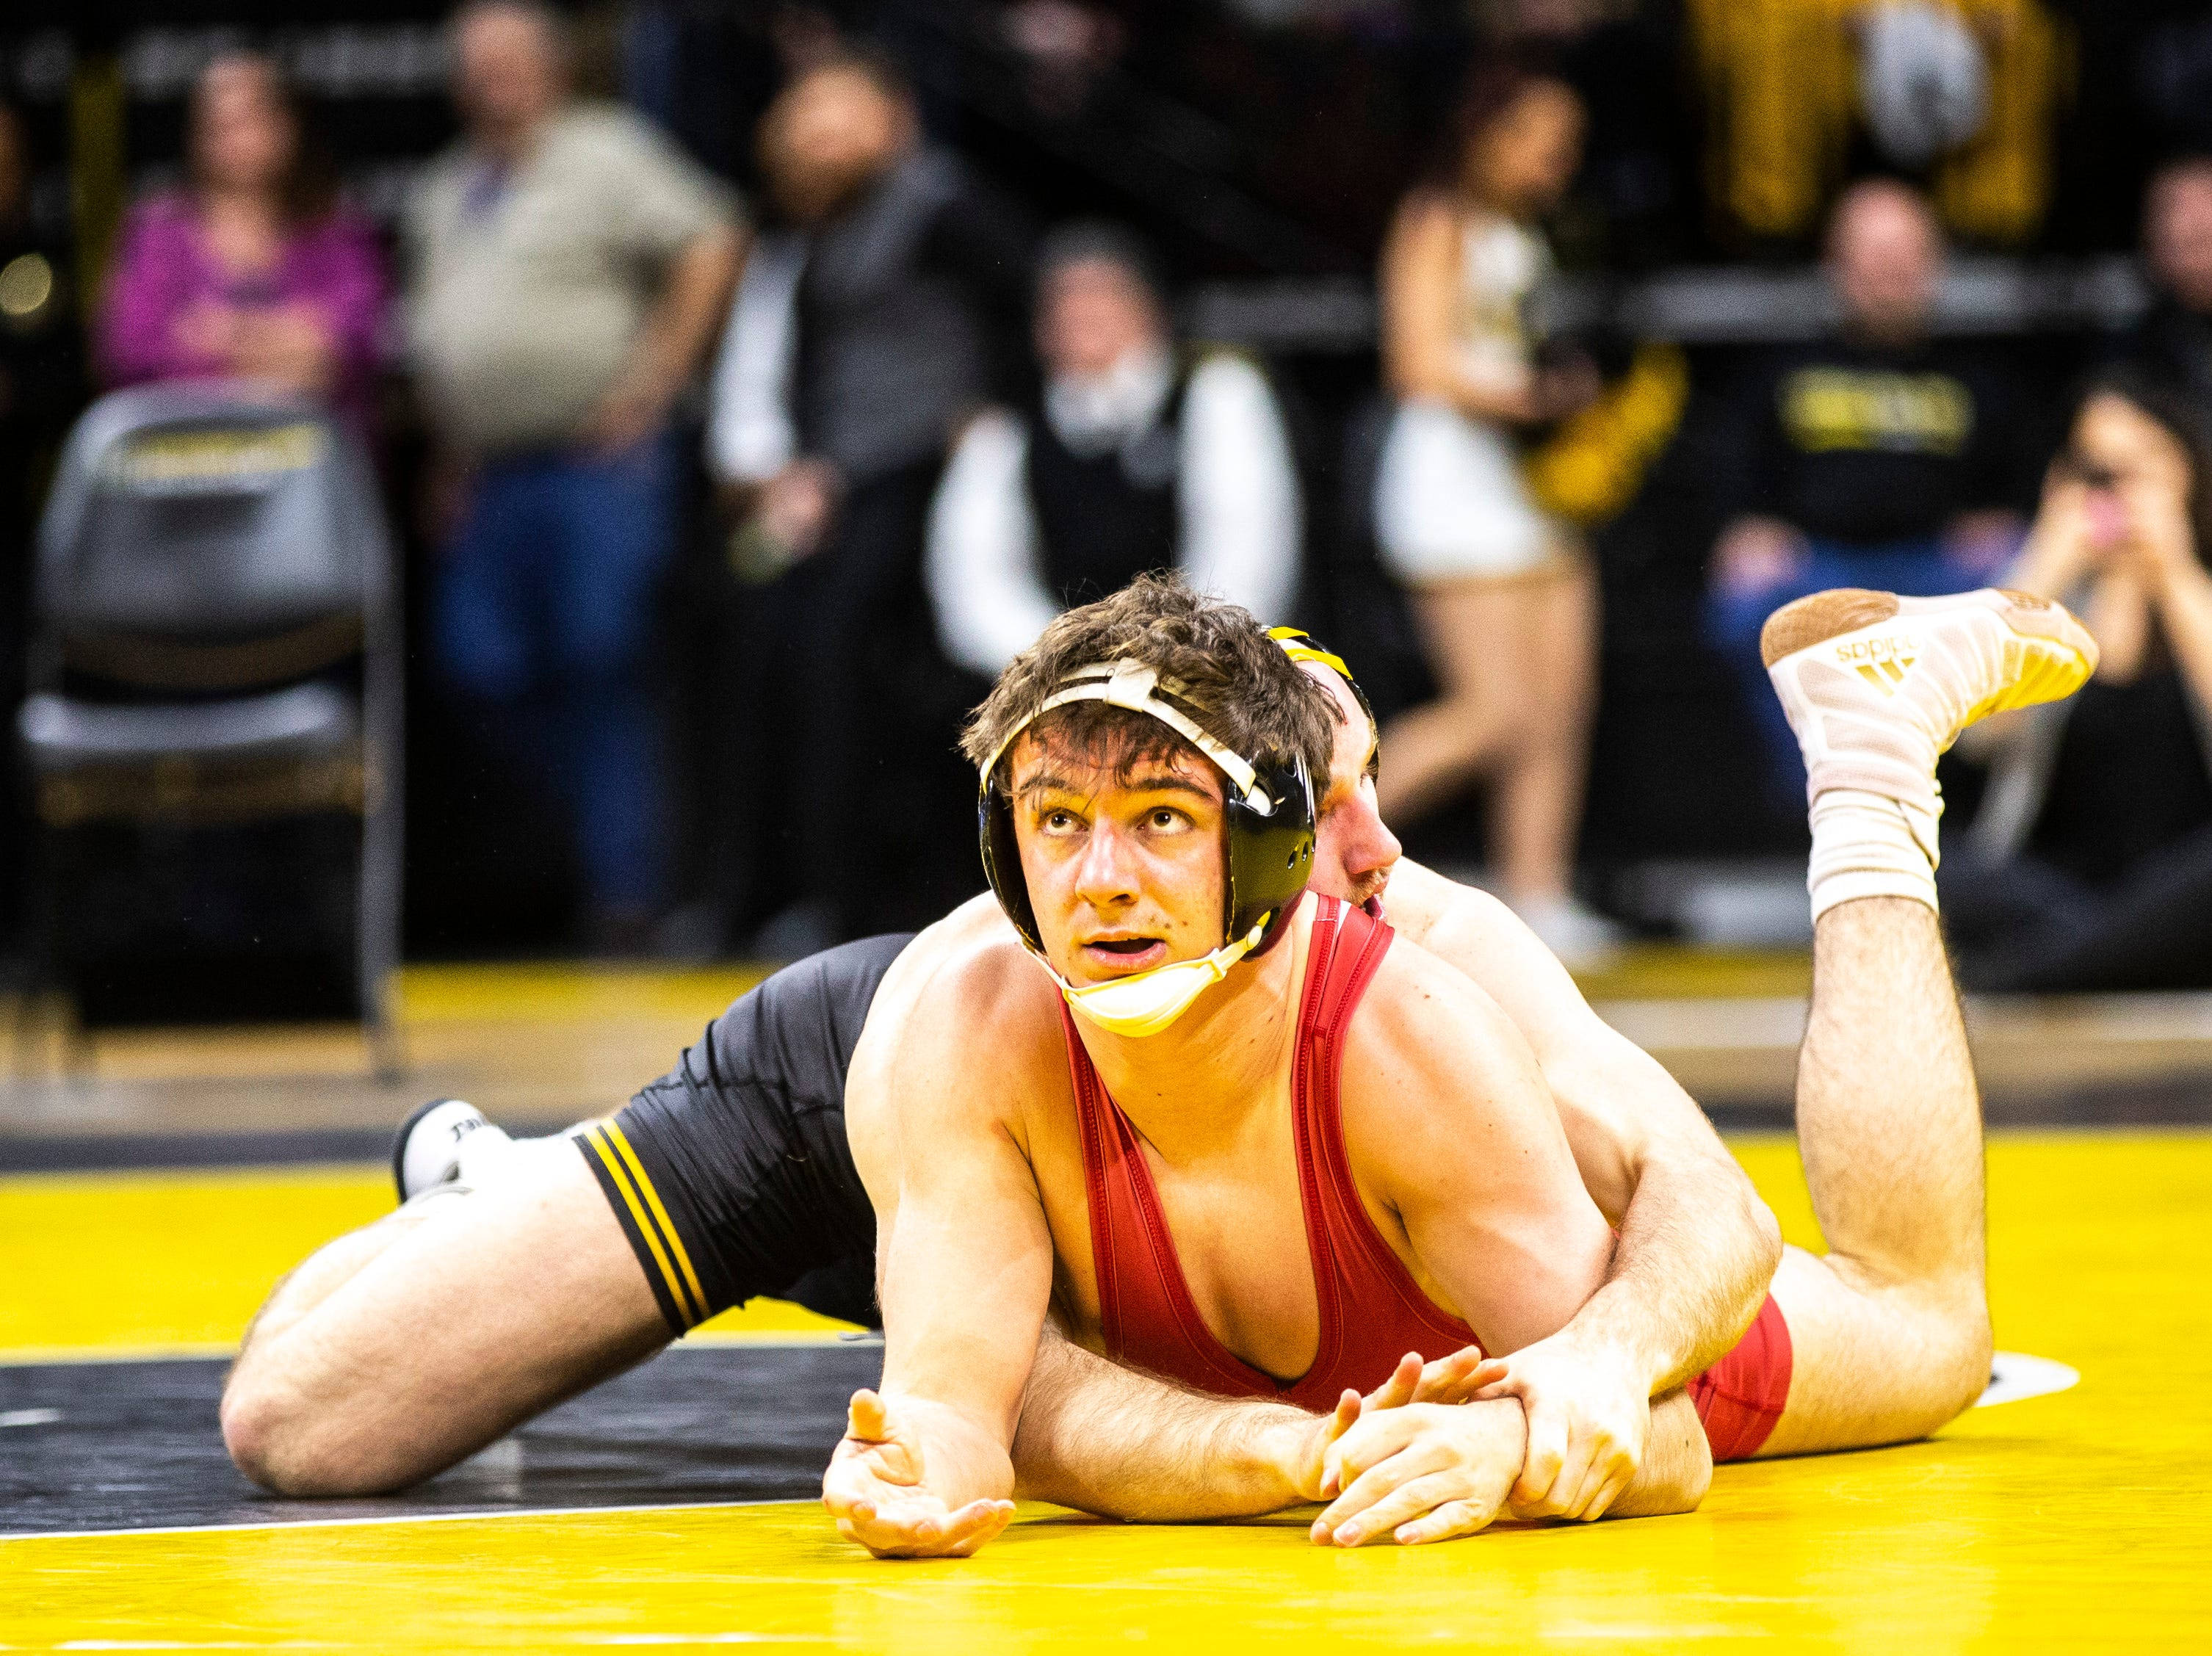 Iowa's Alex Marinelli, back, wrestles Indiana's Dillon Hoey at 165 during a NCAA Big Ten Conference wrestling dual on Friday, Feb. 15, 2019 at Carver-Hawkeye Arena in Iowa City, Iowa.